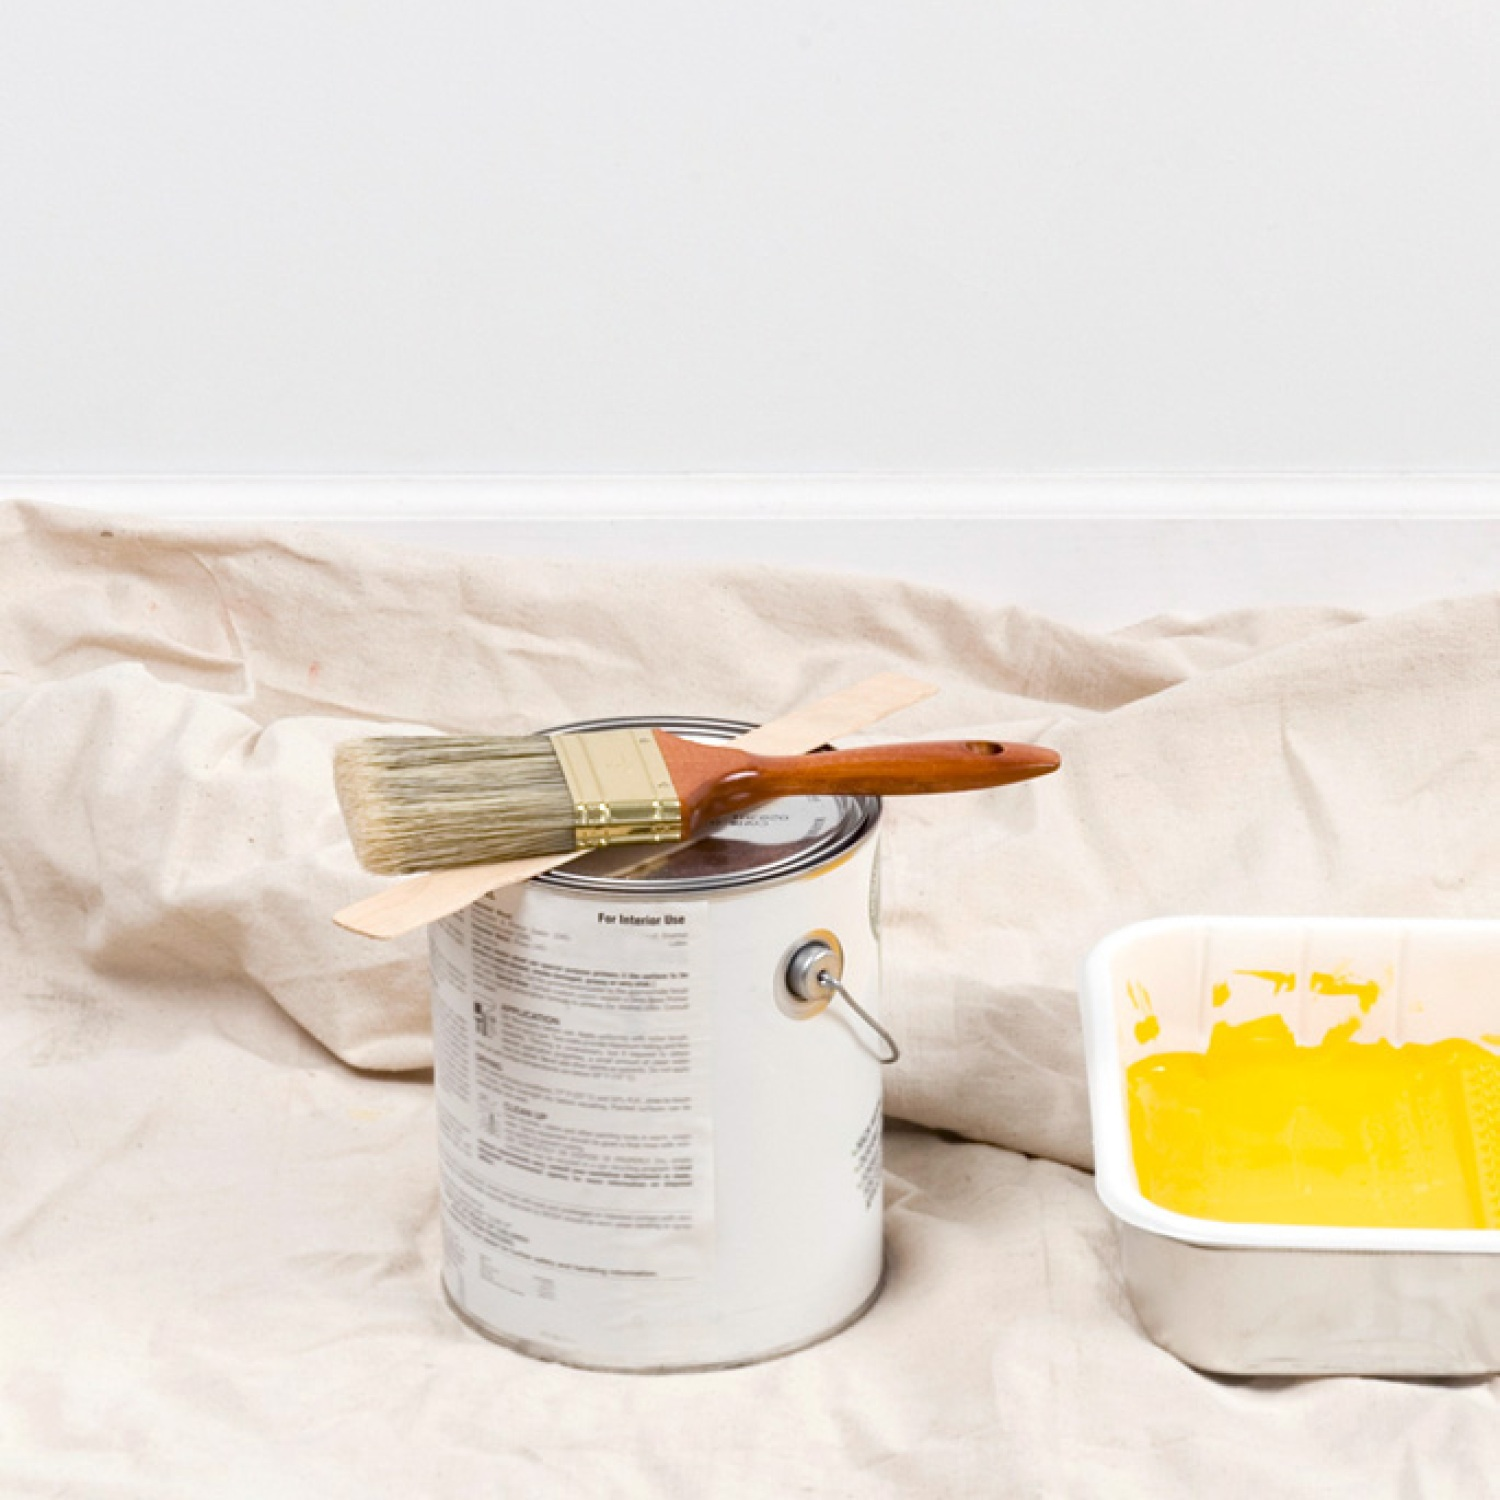 Painting supplies and yellow wall paint